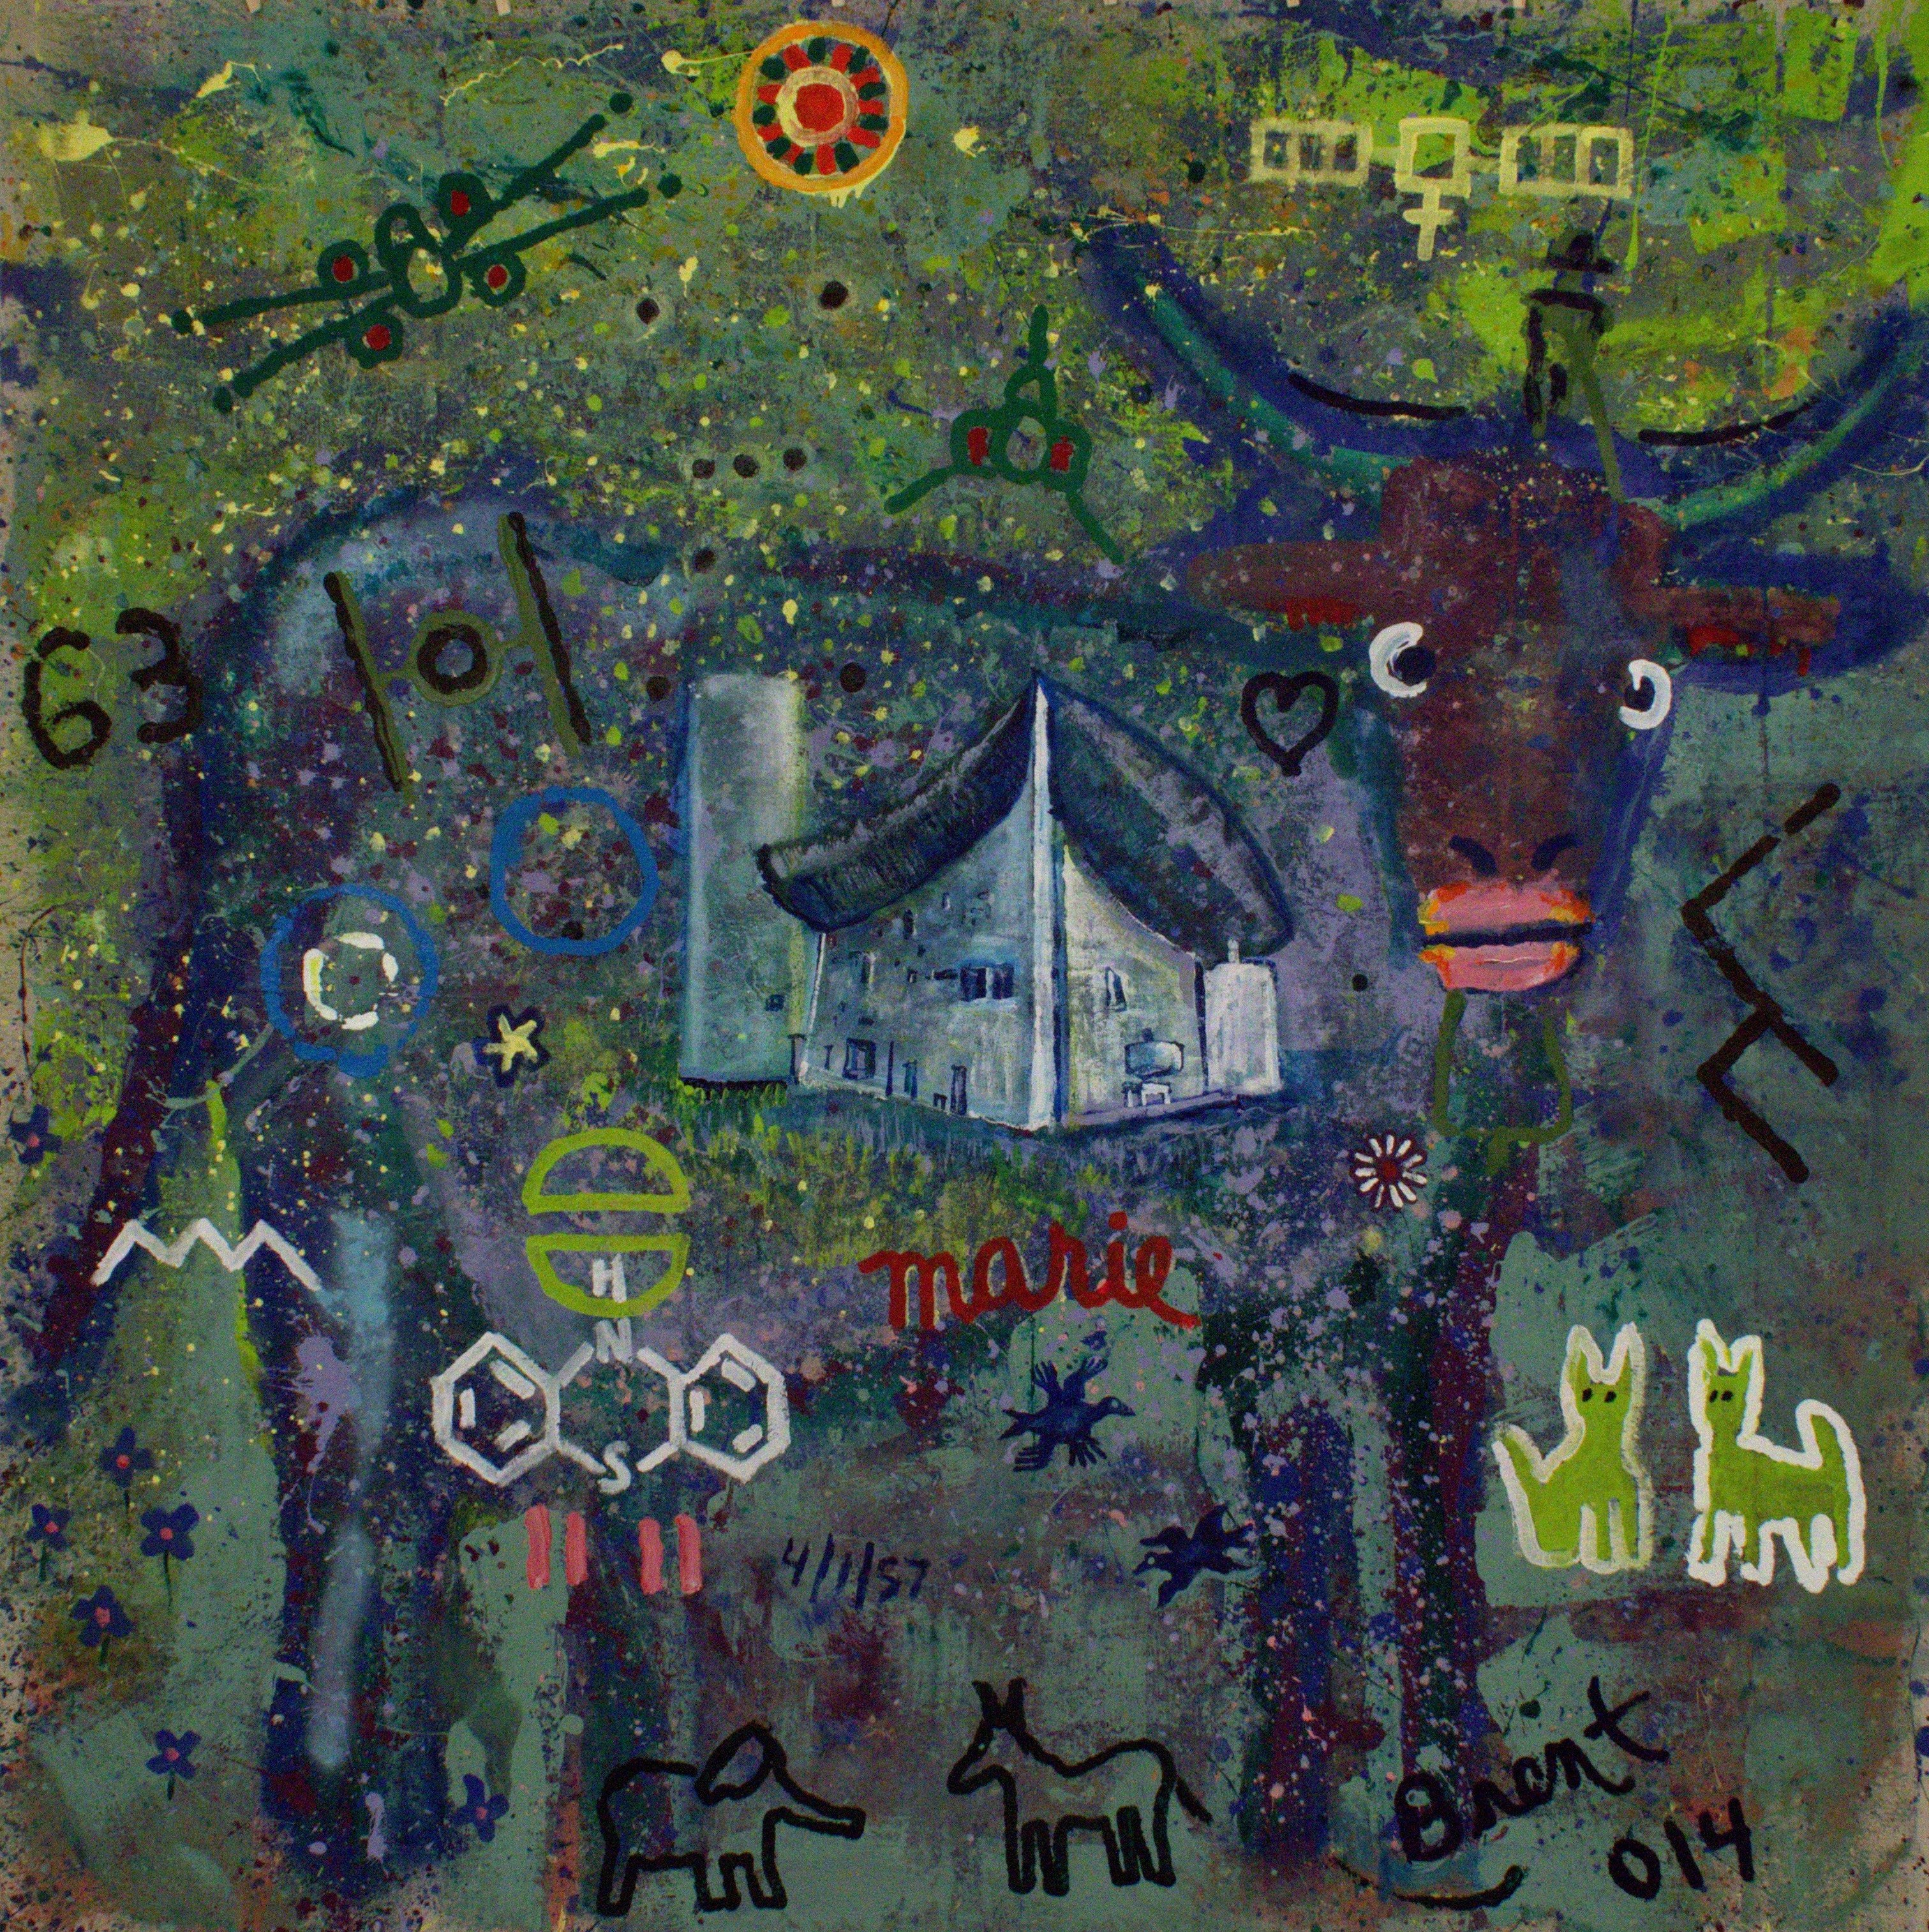 R on Ch Amp Cow artwork by Brent Weston - art listed for sale on Artplode